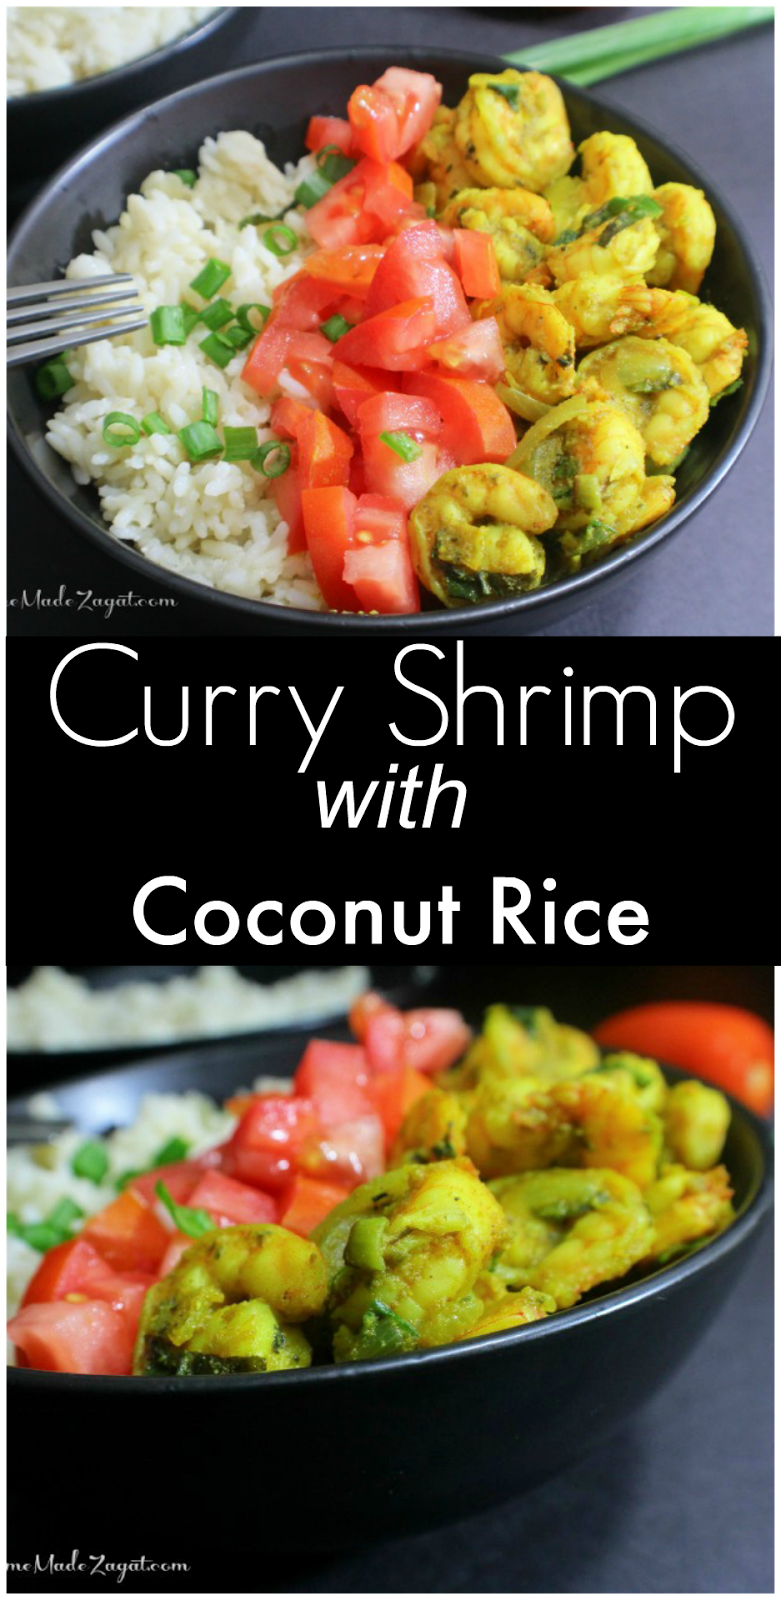 Curry Shrimp with Coconut Rice | Home Made Zagat